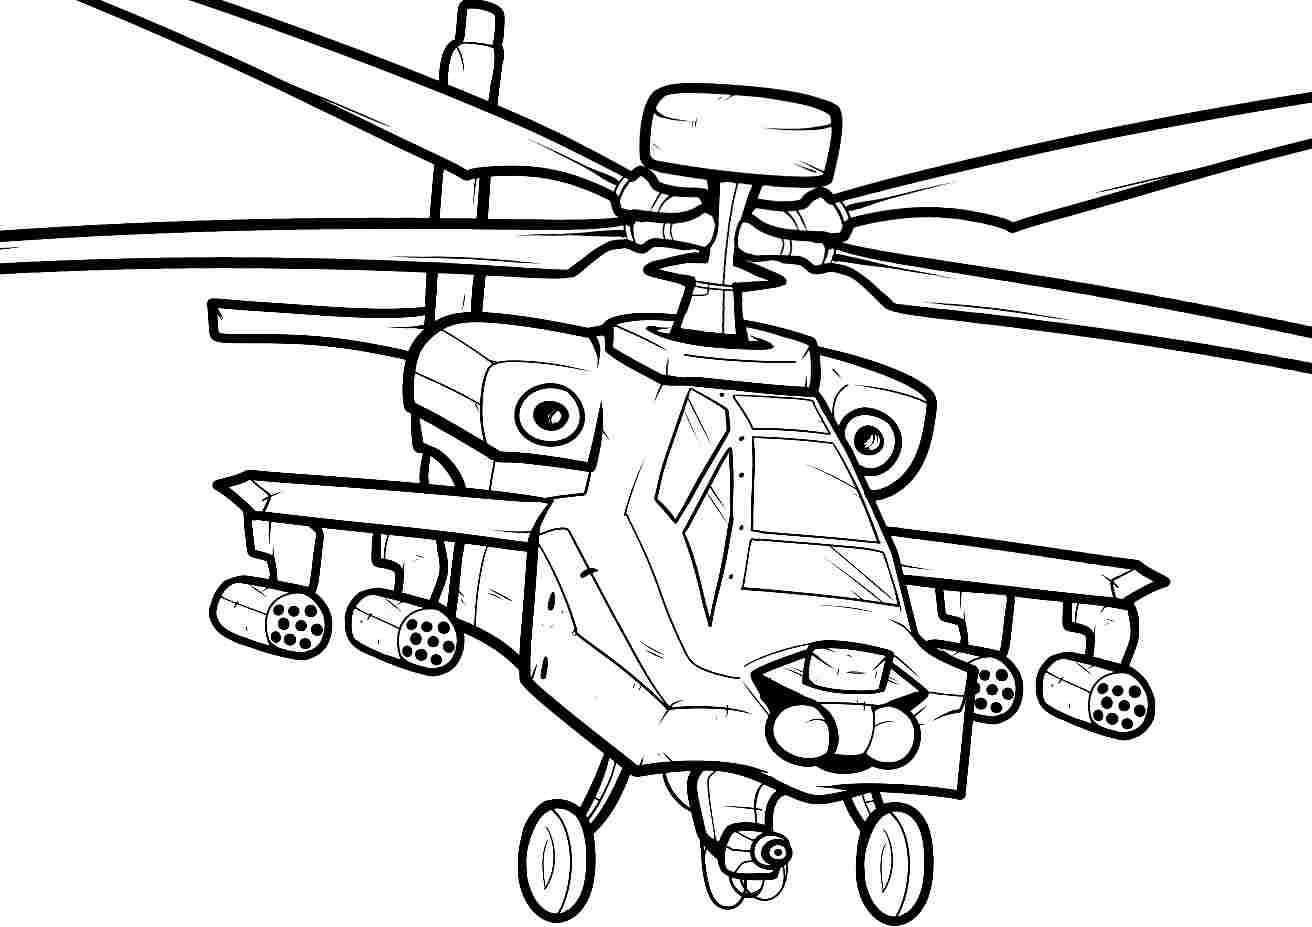 helicopter printable helicopter coloring pages coloring pages to download and printable helicopter